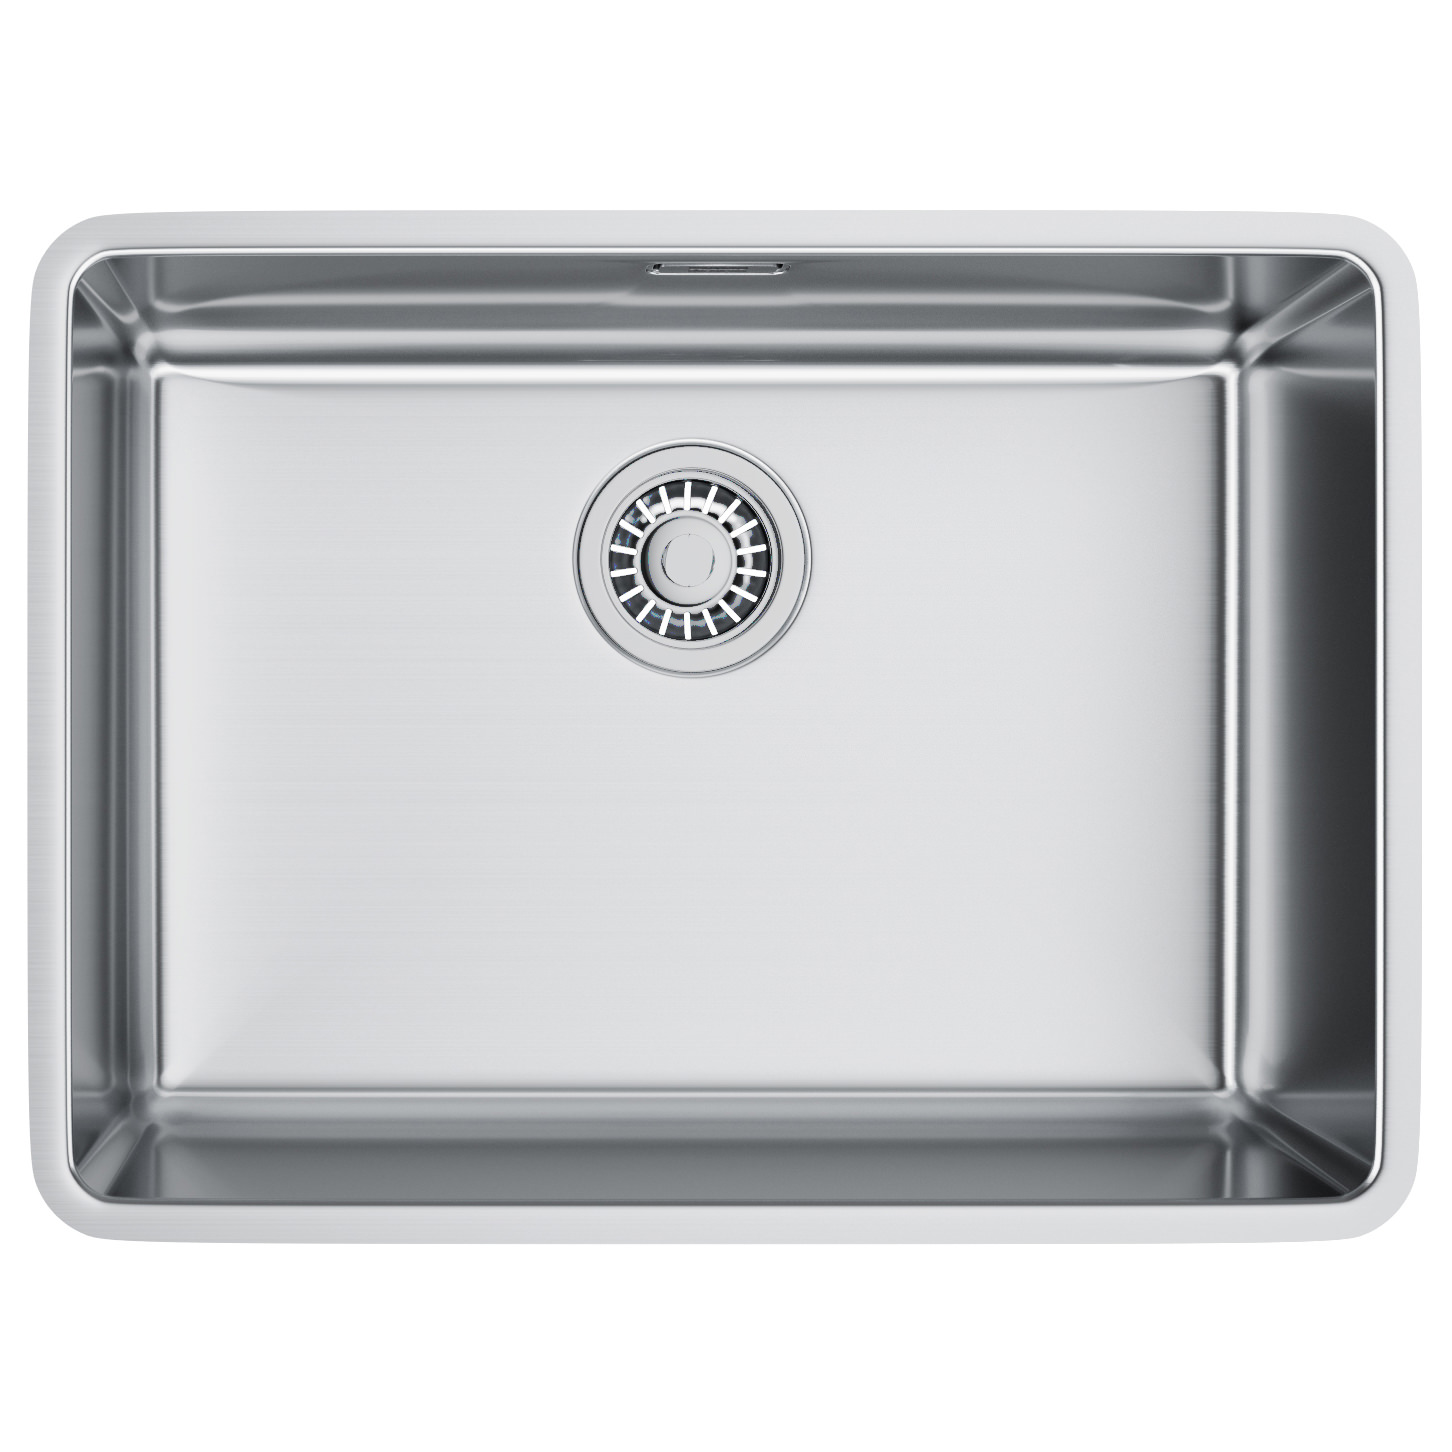 Franke Stainless Steel Sink : Franke Kubus KBX 110 55 Stainless Steel Undermount Kitchen Sink ...